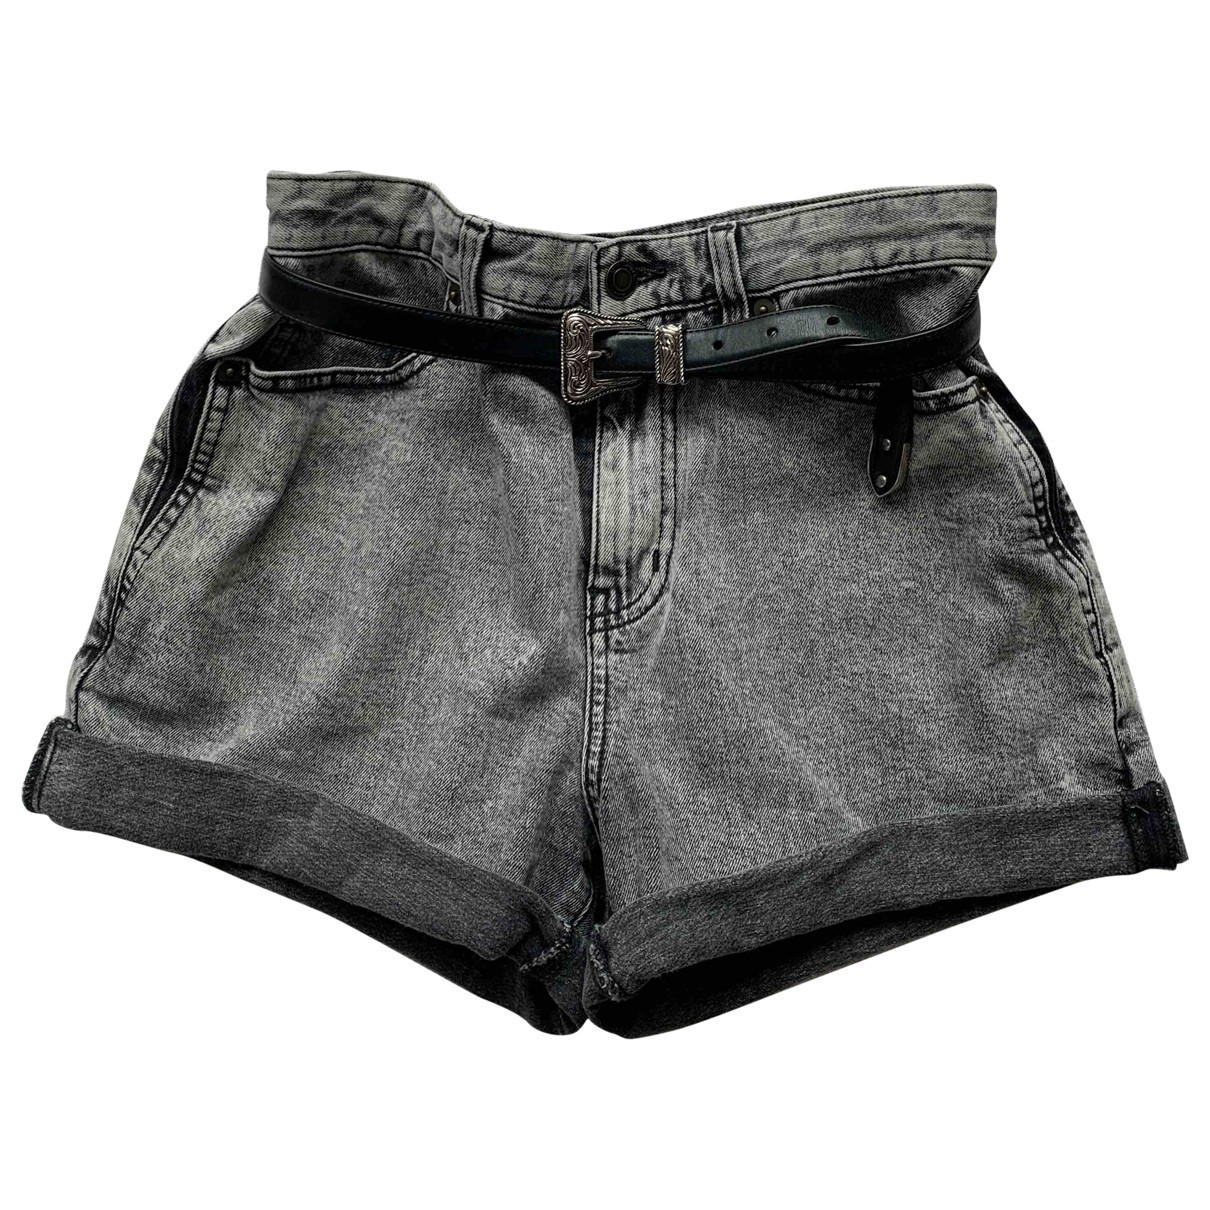 Saint Laurent \N Shorts in  Grau Baumwolle